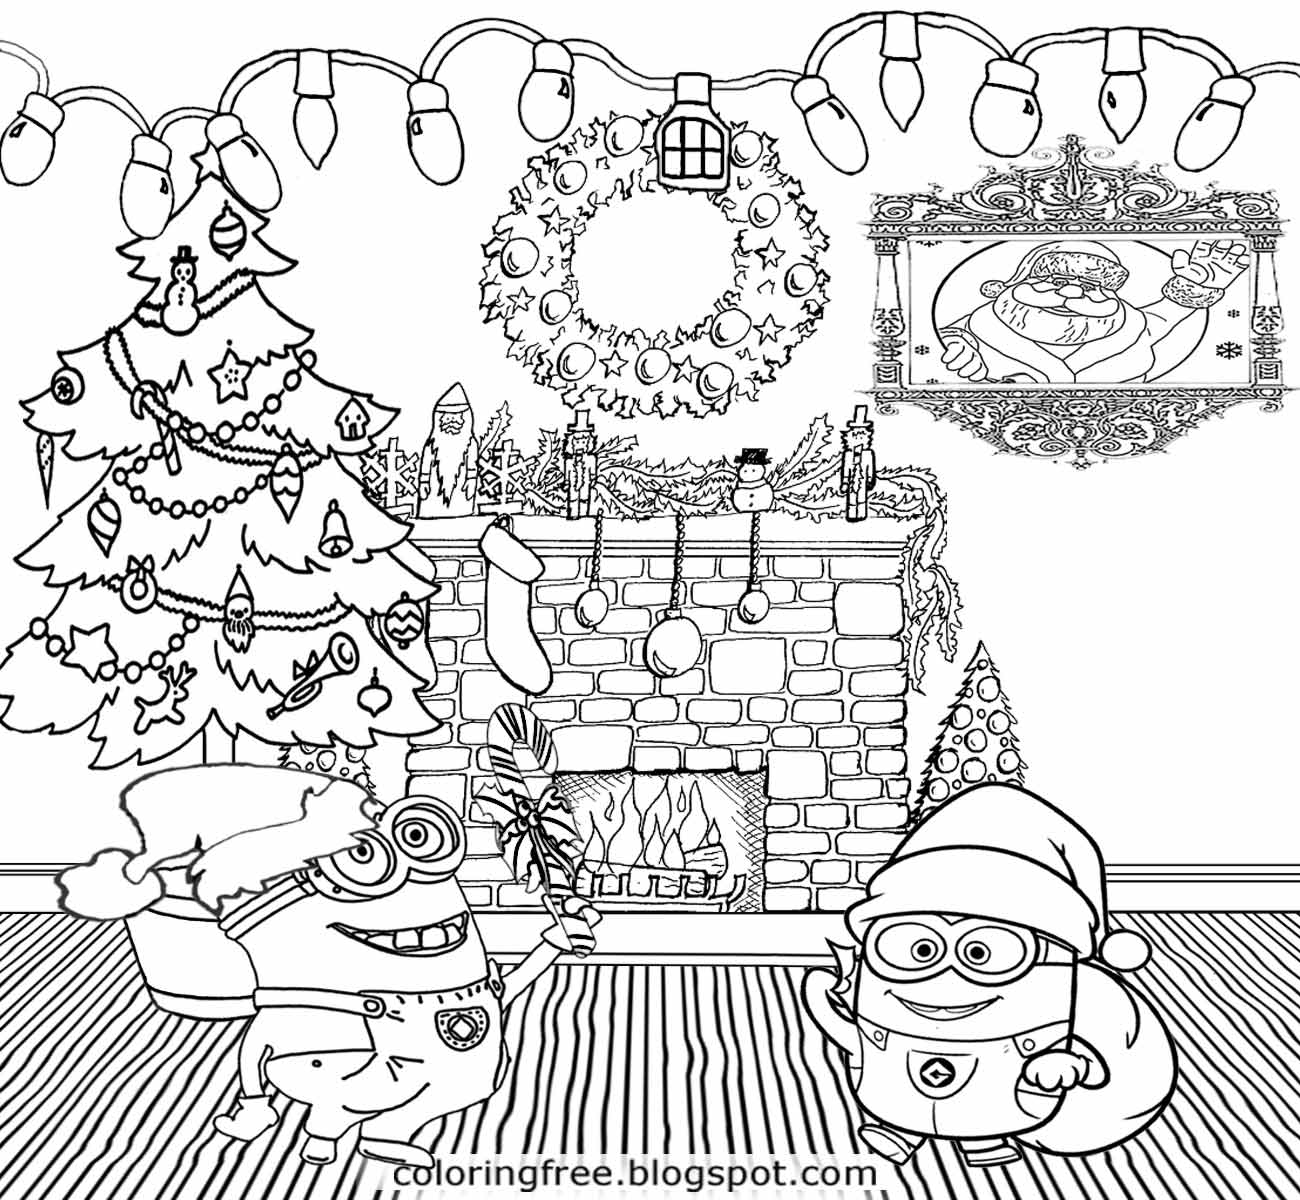 The Ultimate List of Christmas Worksheets and Christmas